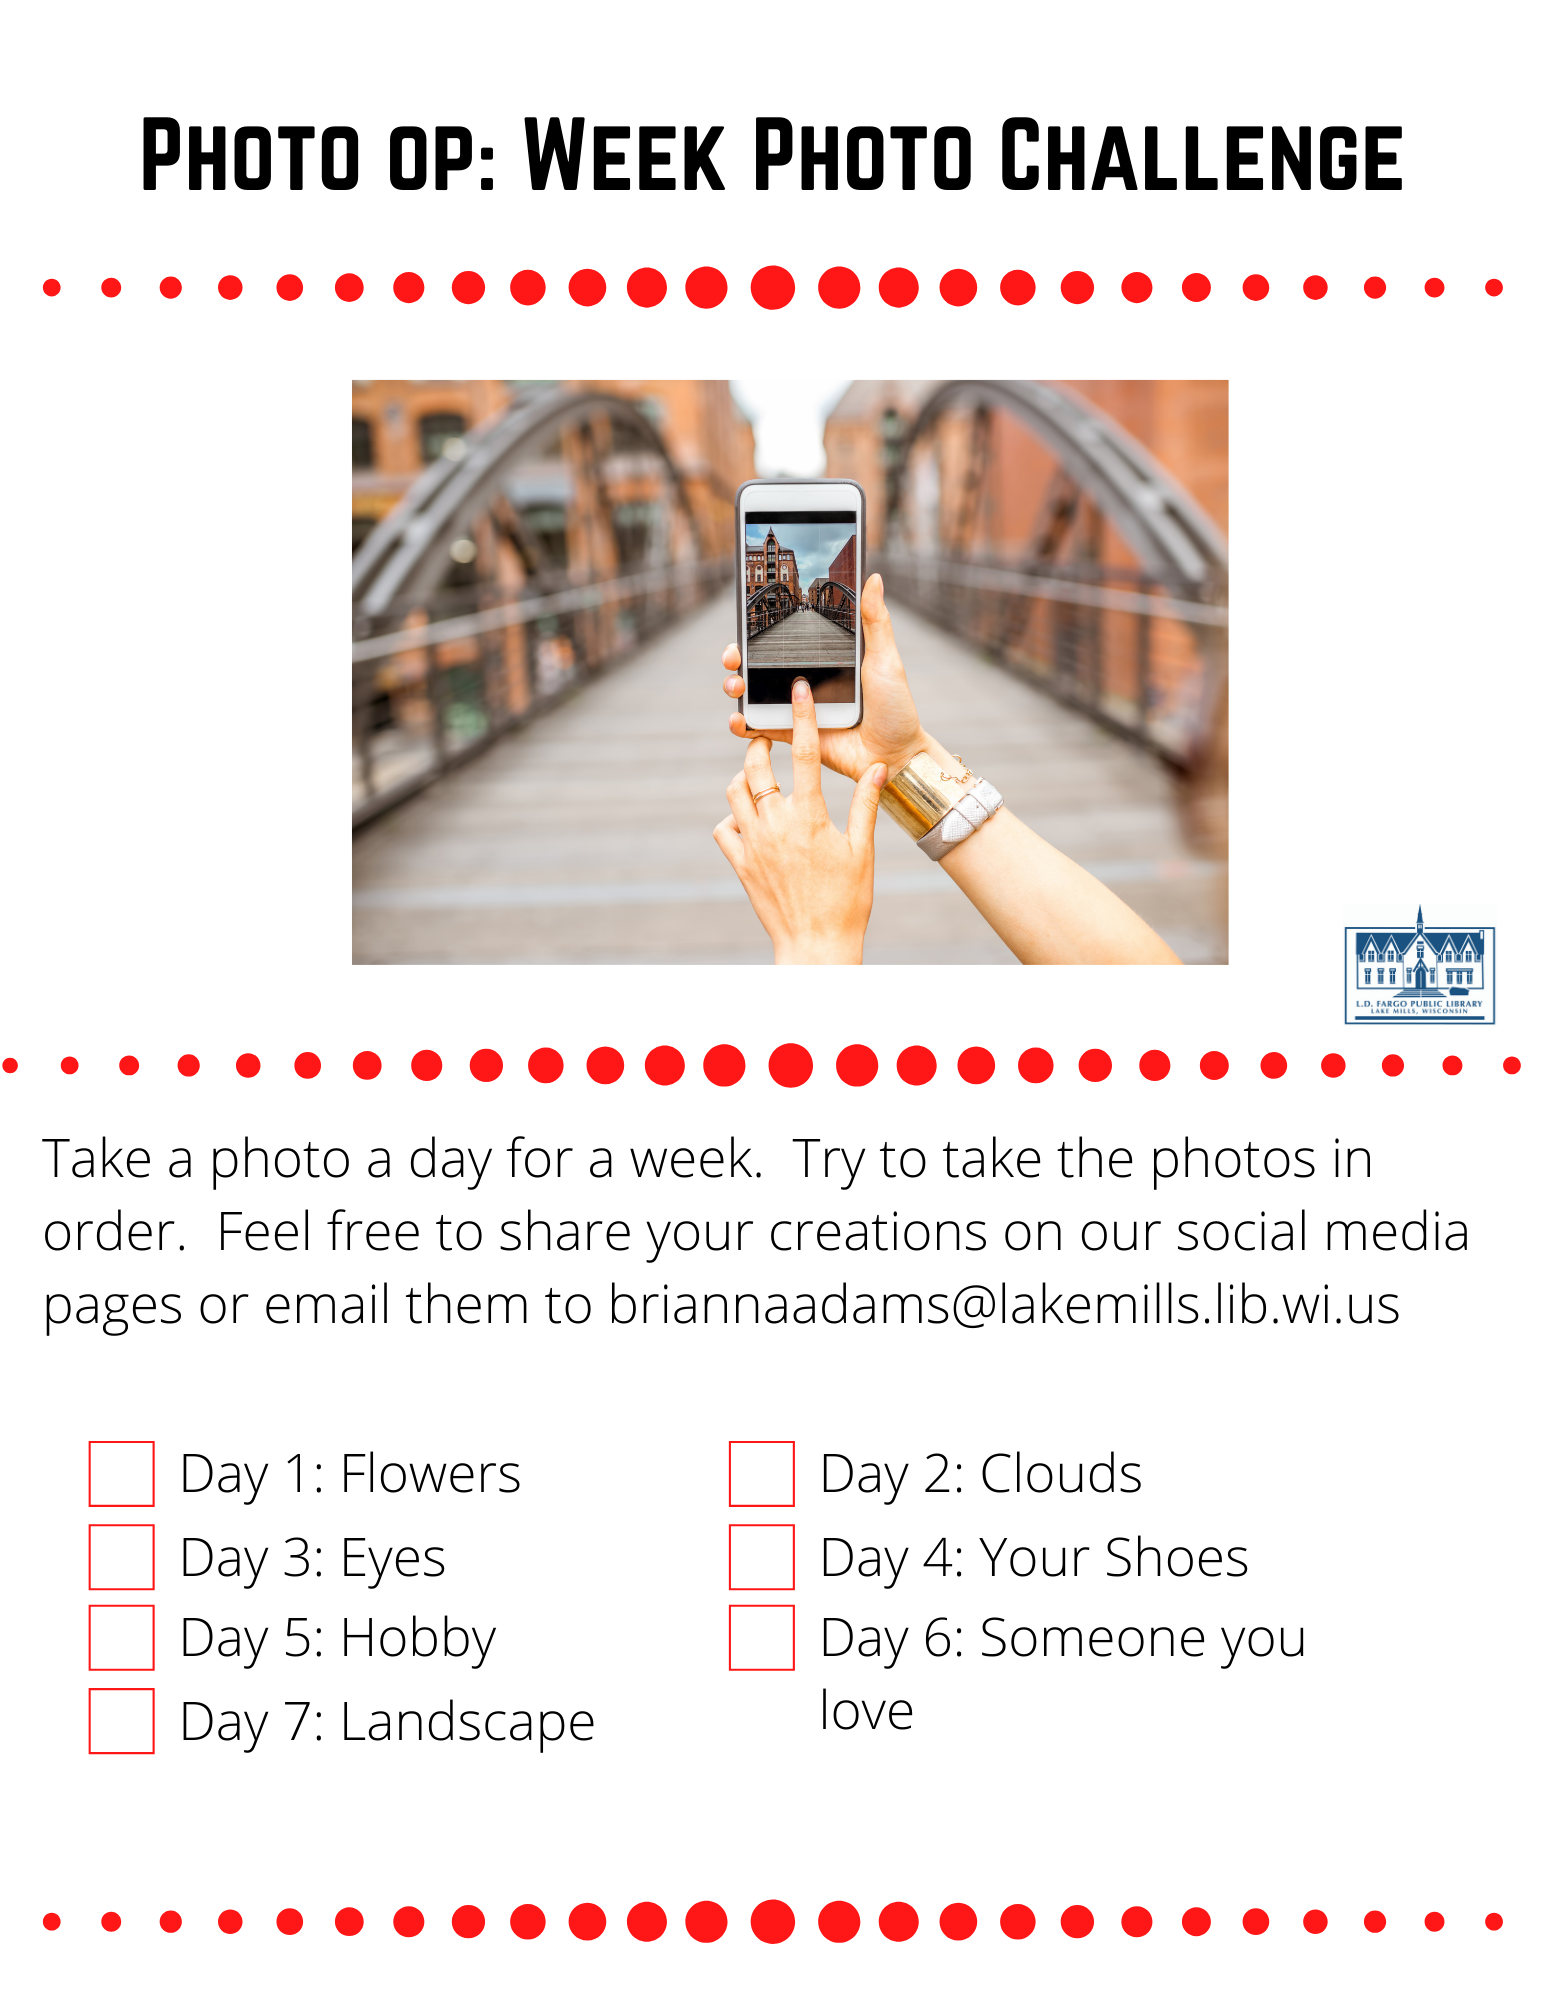 Photo op: Week Photo Challenge  Take a photo a day for a week.  Try to take the photos in order.  Feel free to share your creations on our social media pages or email them to briannaadams@lakemills.lib.wi.us   Day 1: Flowers  Day 2: Clouds  Day 3: Eyes  Day 4: Your Shoes  Day 5: Hobby  Day 6: Someone you love  Day 7: Landscape